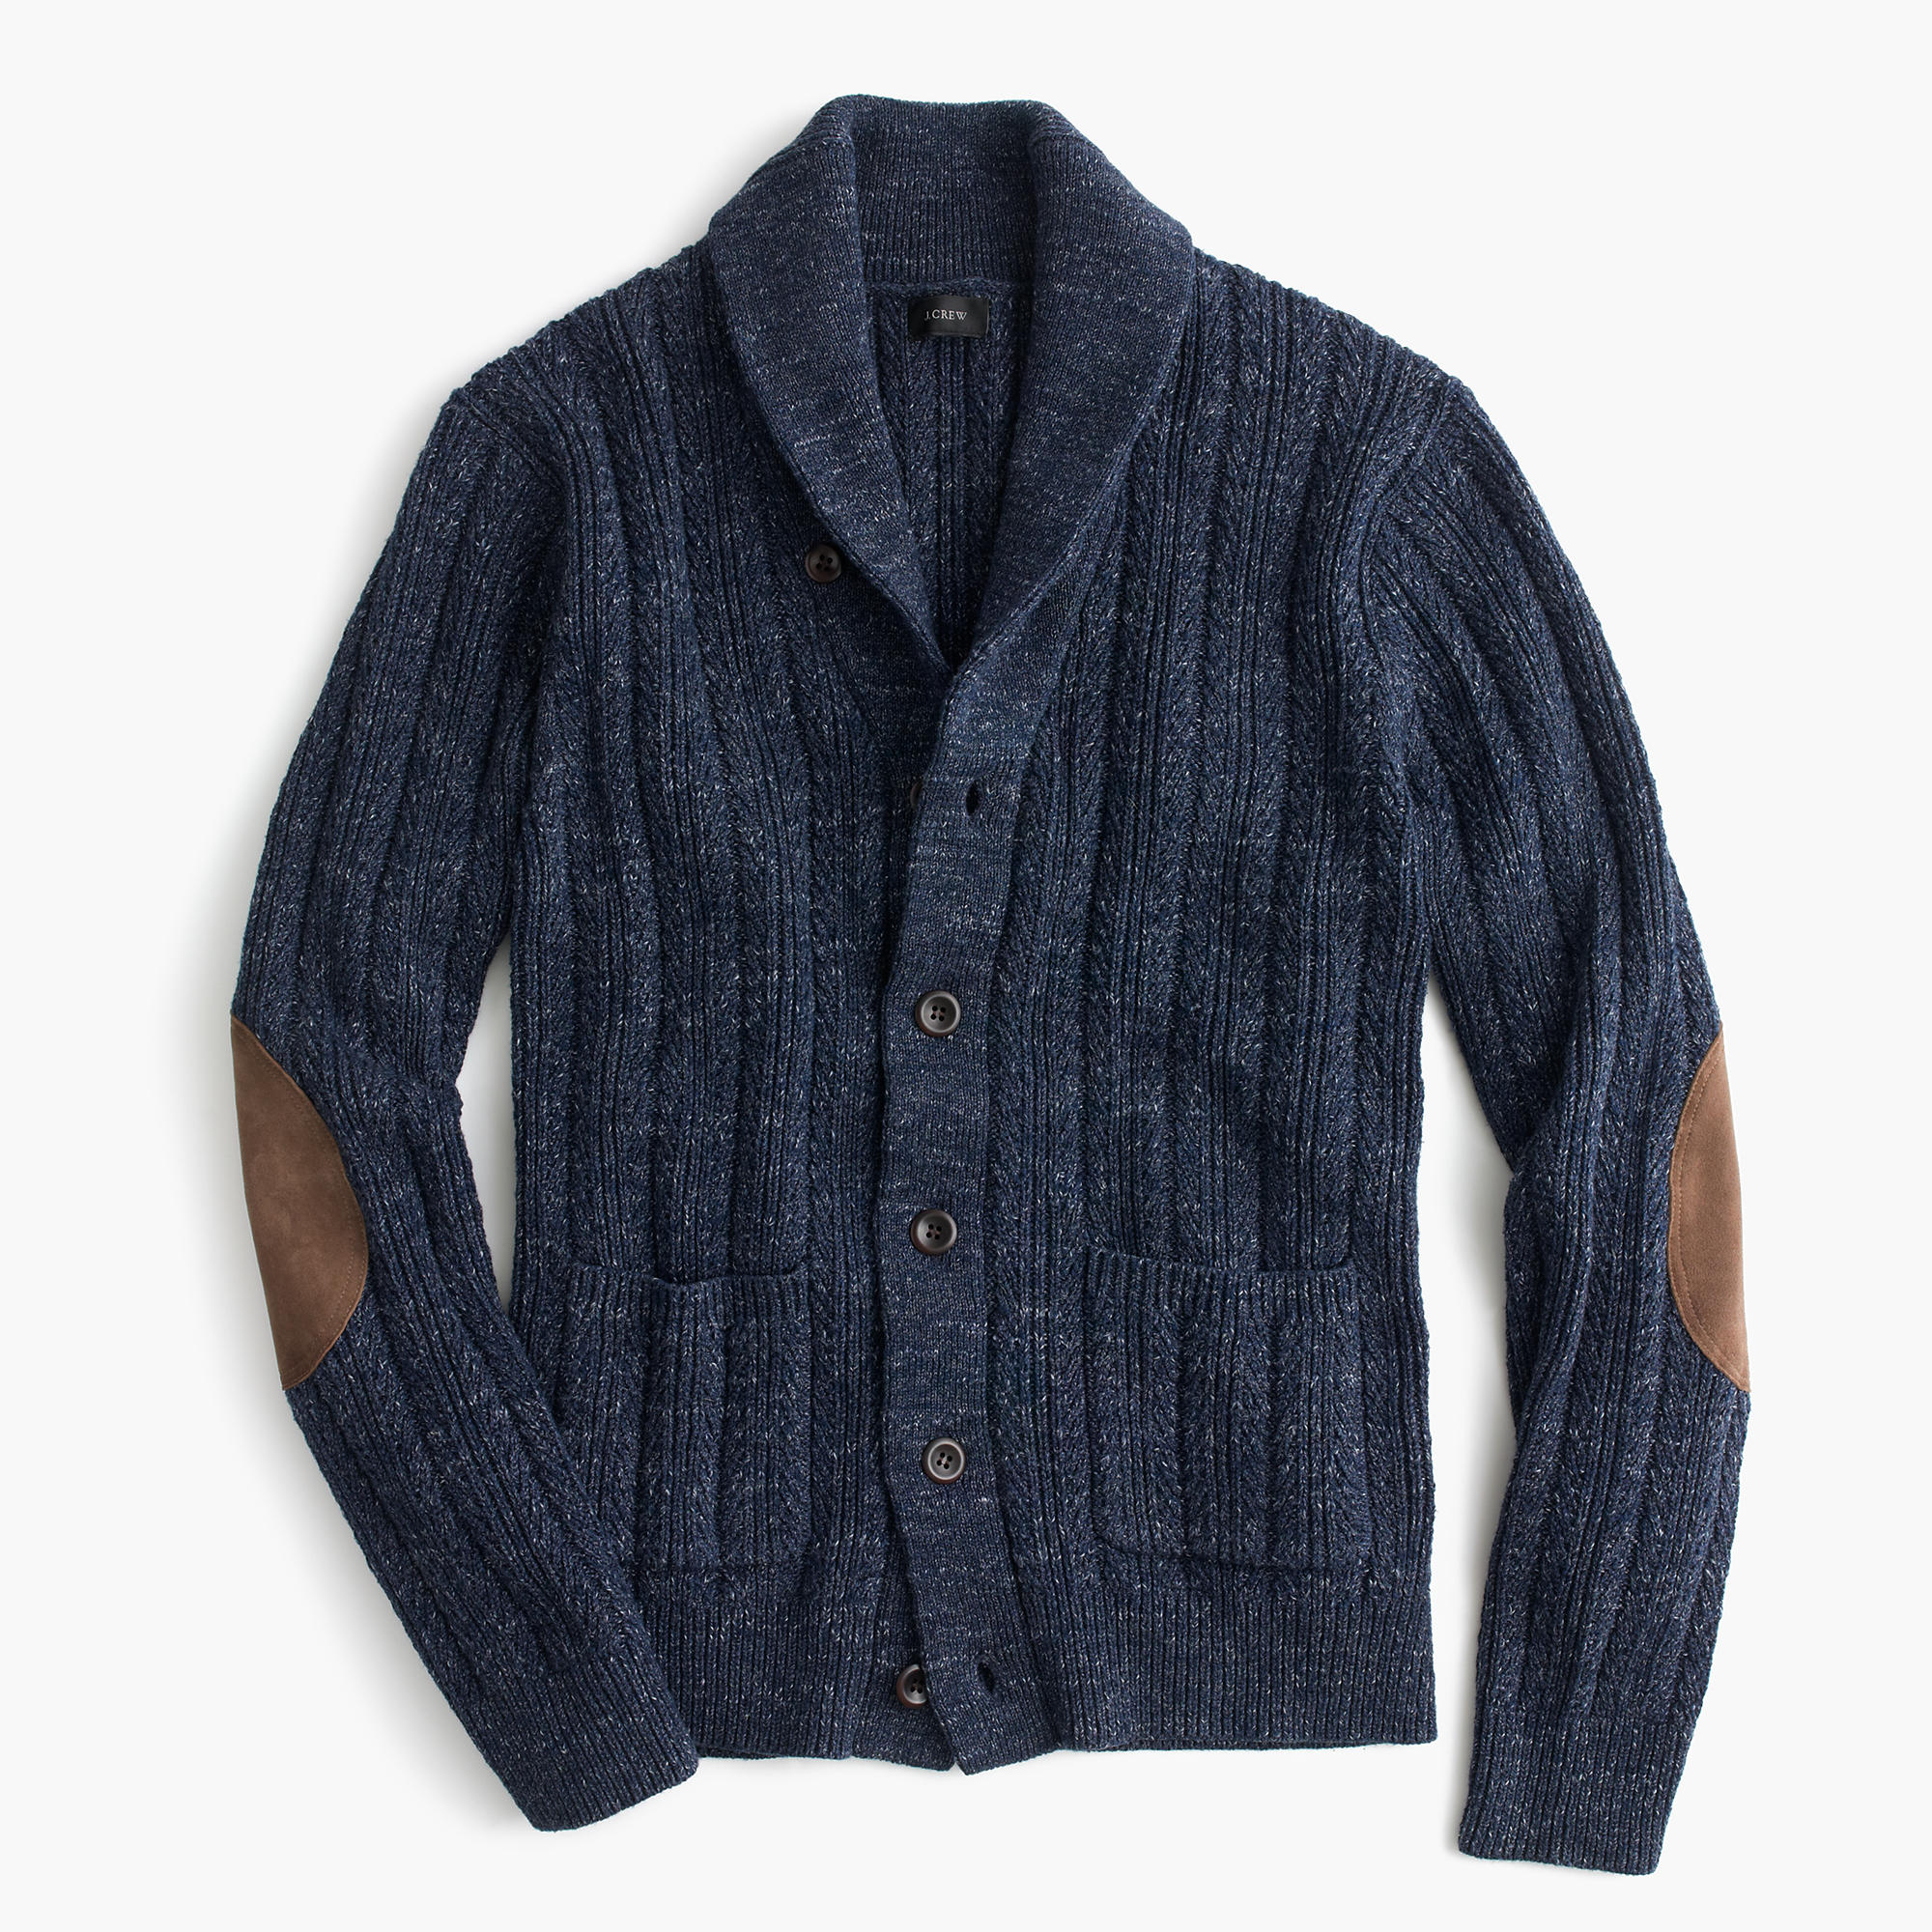 Cotton Mariner Shawl-Collar Cardigan Sweater : Men's ...